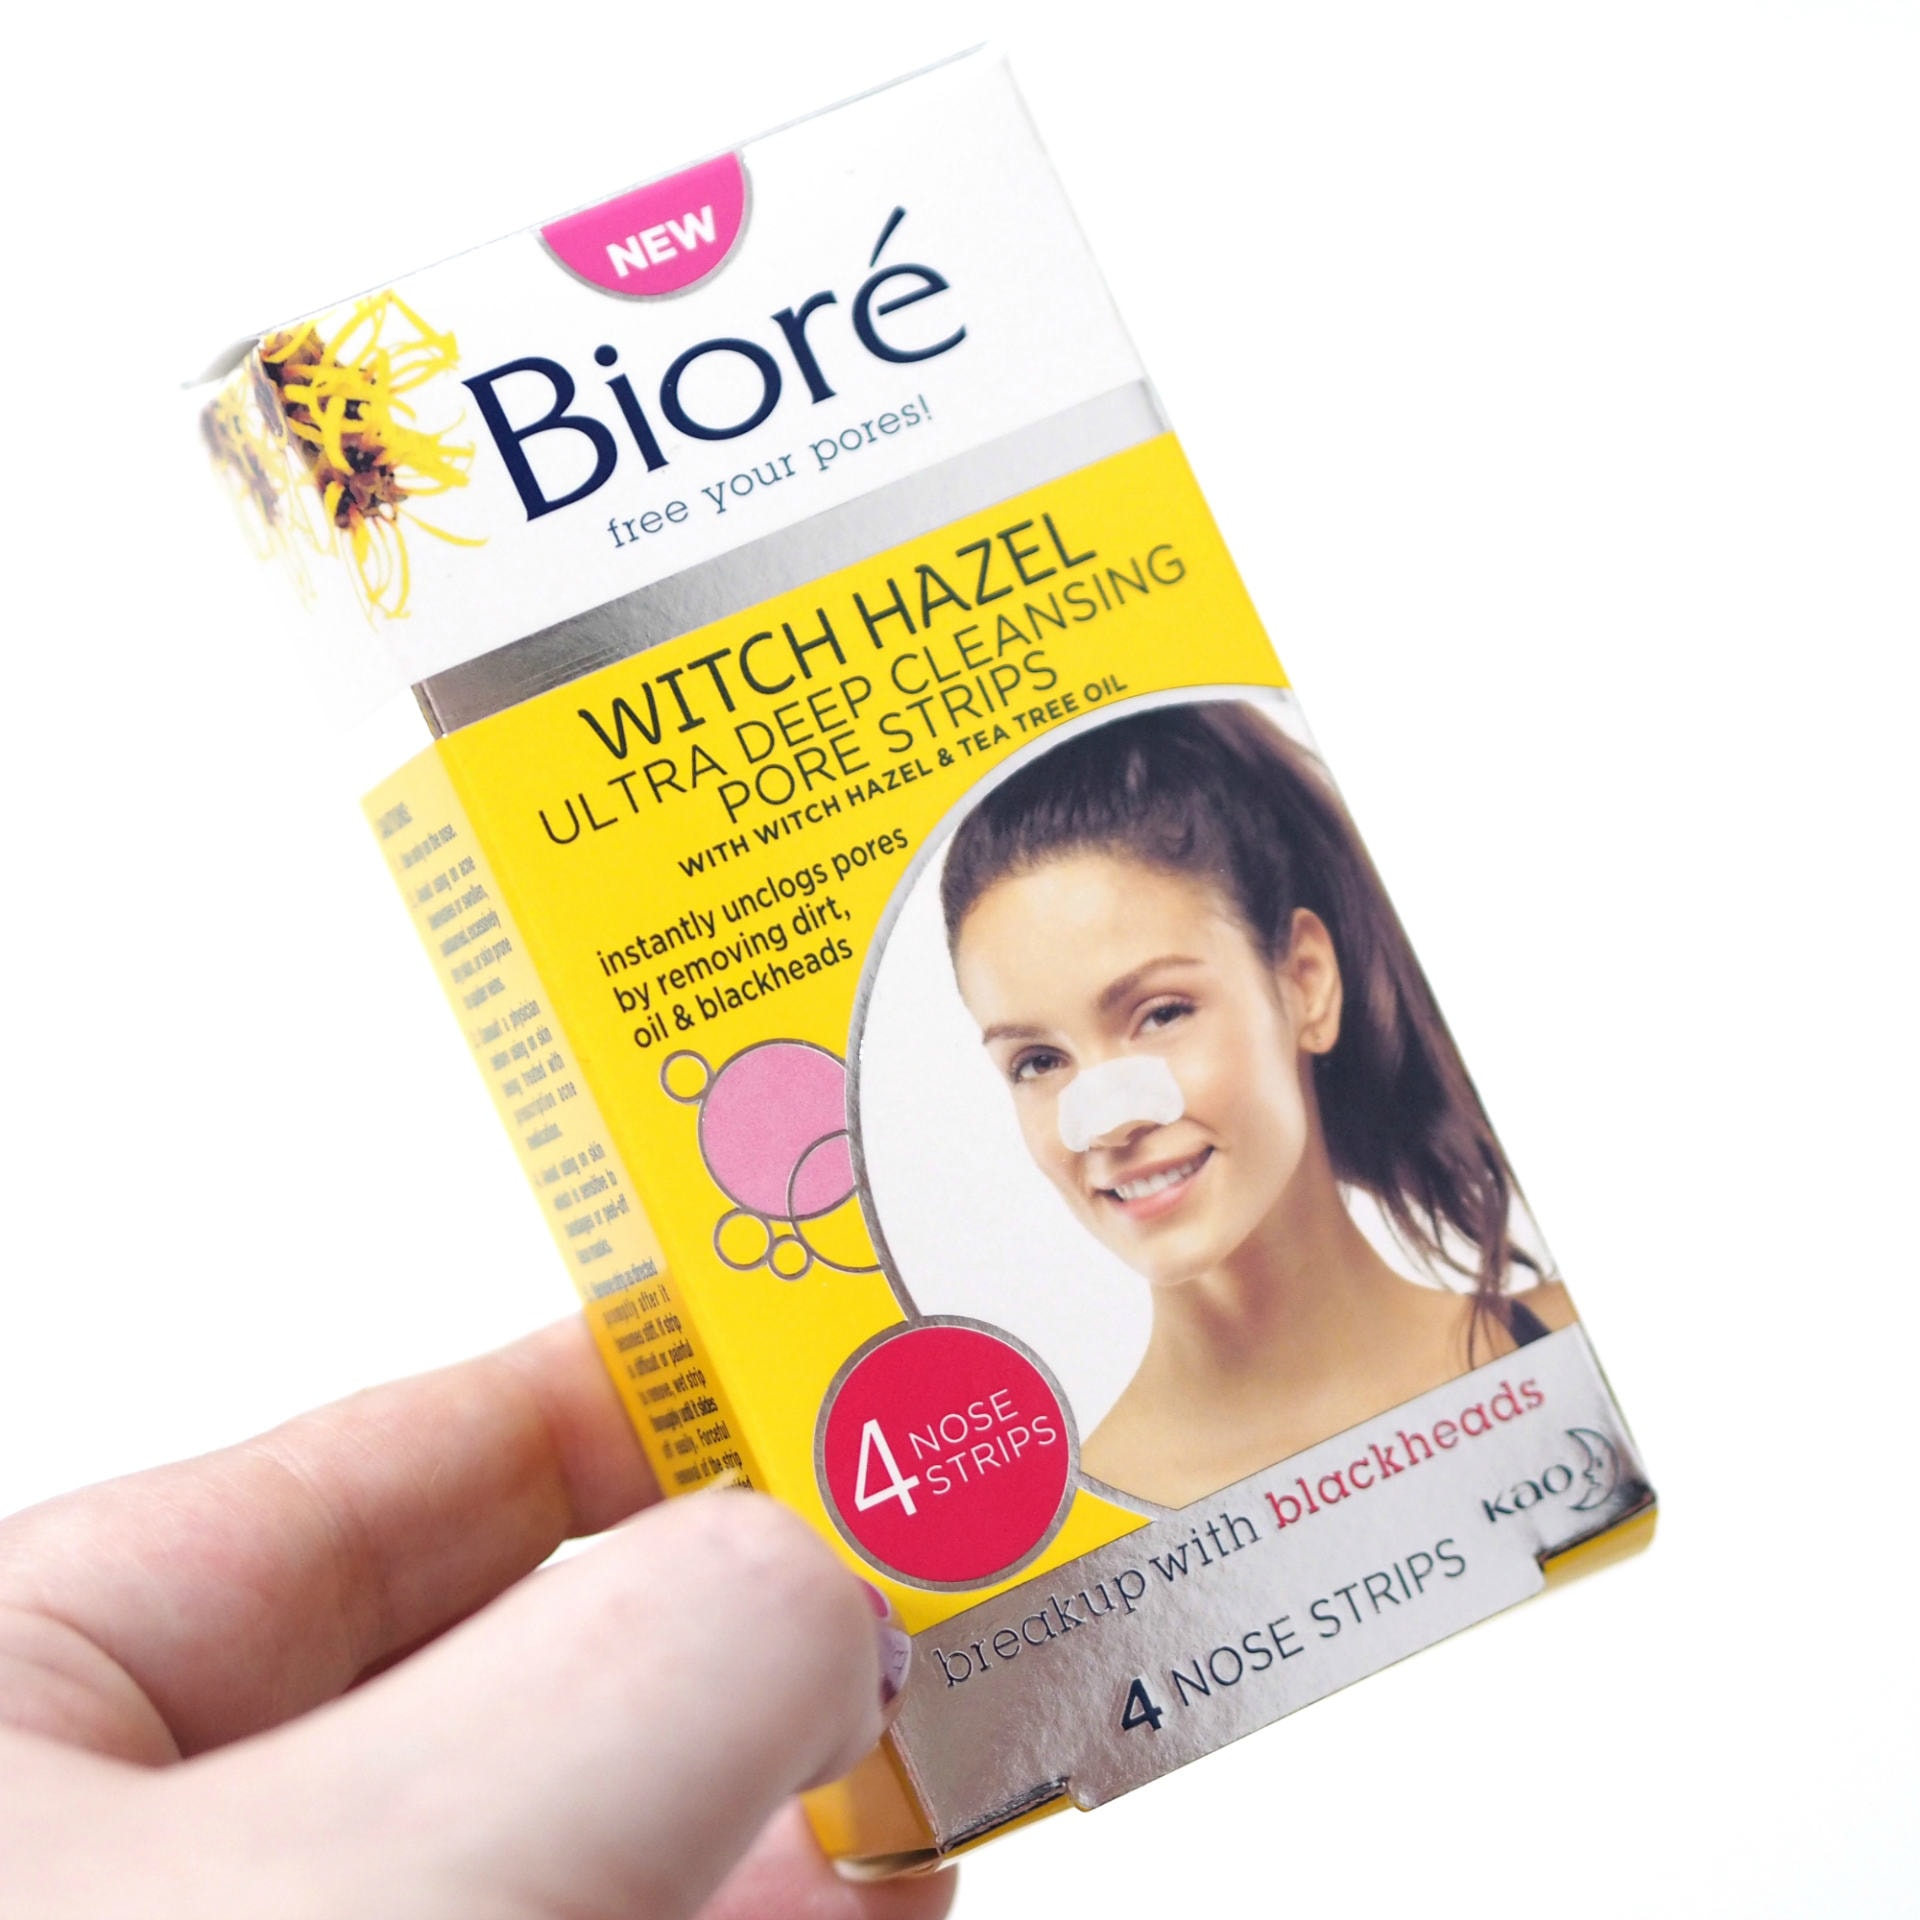 Christmas Stocking Filler Gift Guide 2019 Bioré Witch Hazel Collection - Pore Clarifying Cooling Cleanser & Pore Strips